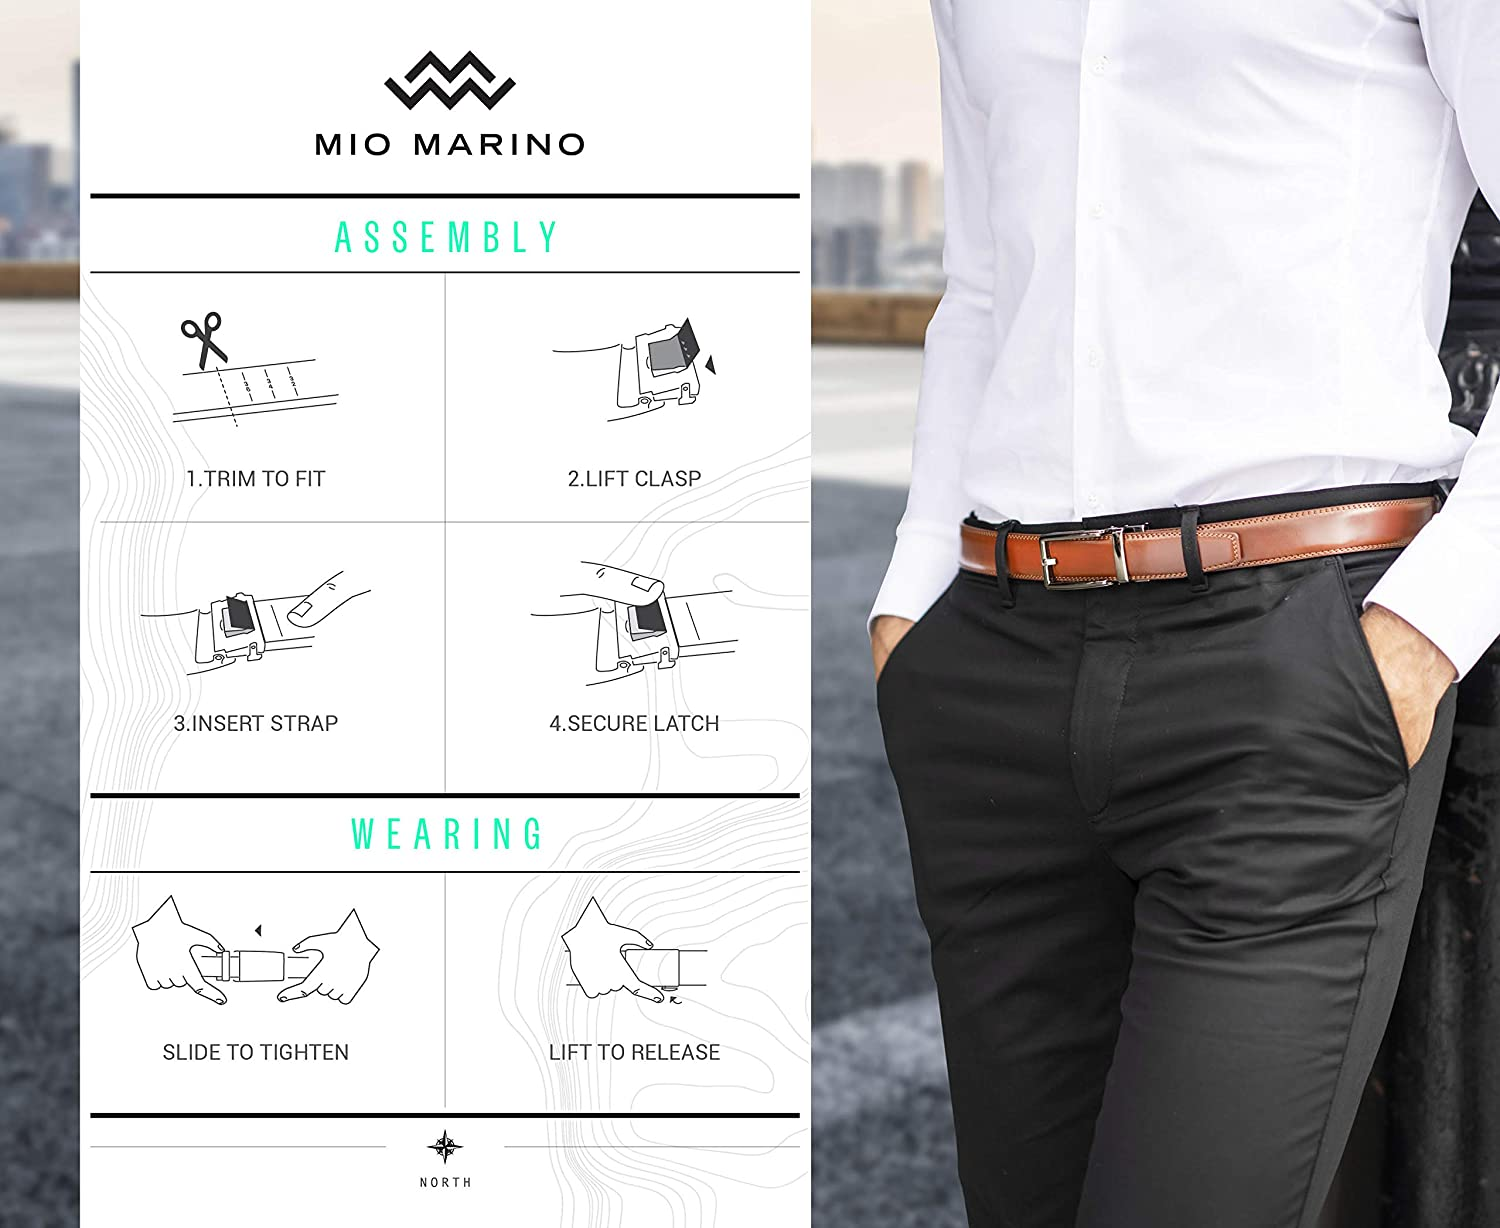 Gunblack Silver Open Buckle with Black Leather Marino Men/'s Genuine Leather Ratchet Dress Belt with Automatic Buckle Enclosed in an Elegant Gift Box Custom XL: Up to 54 Waist